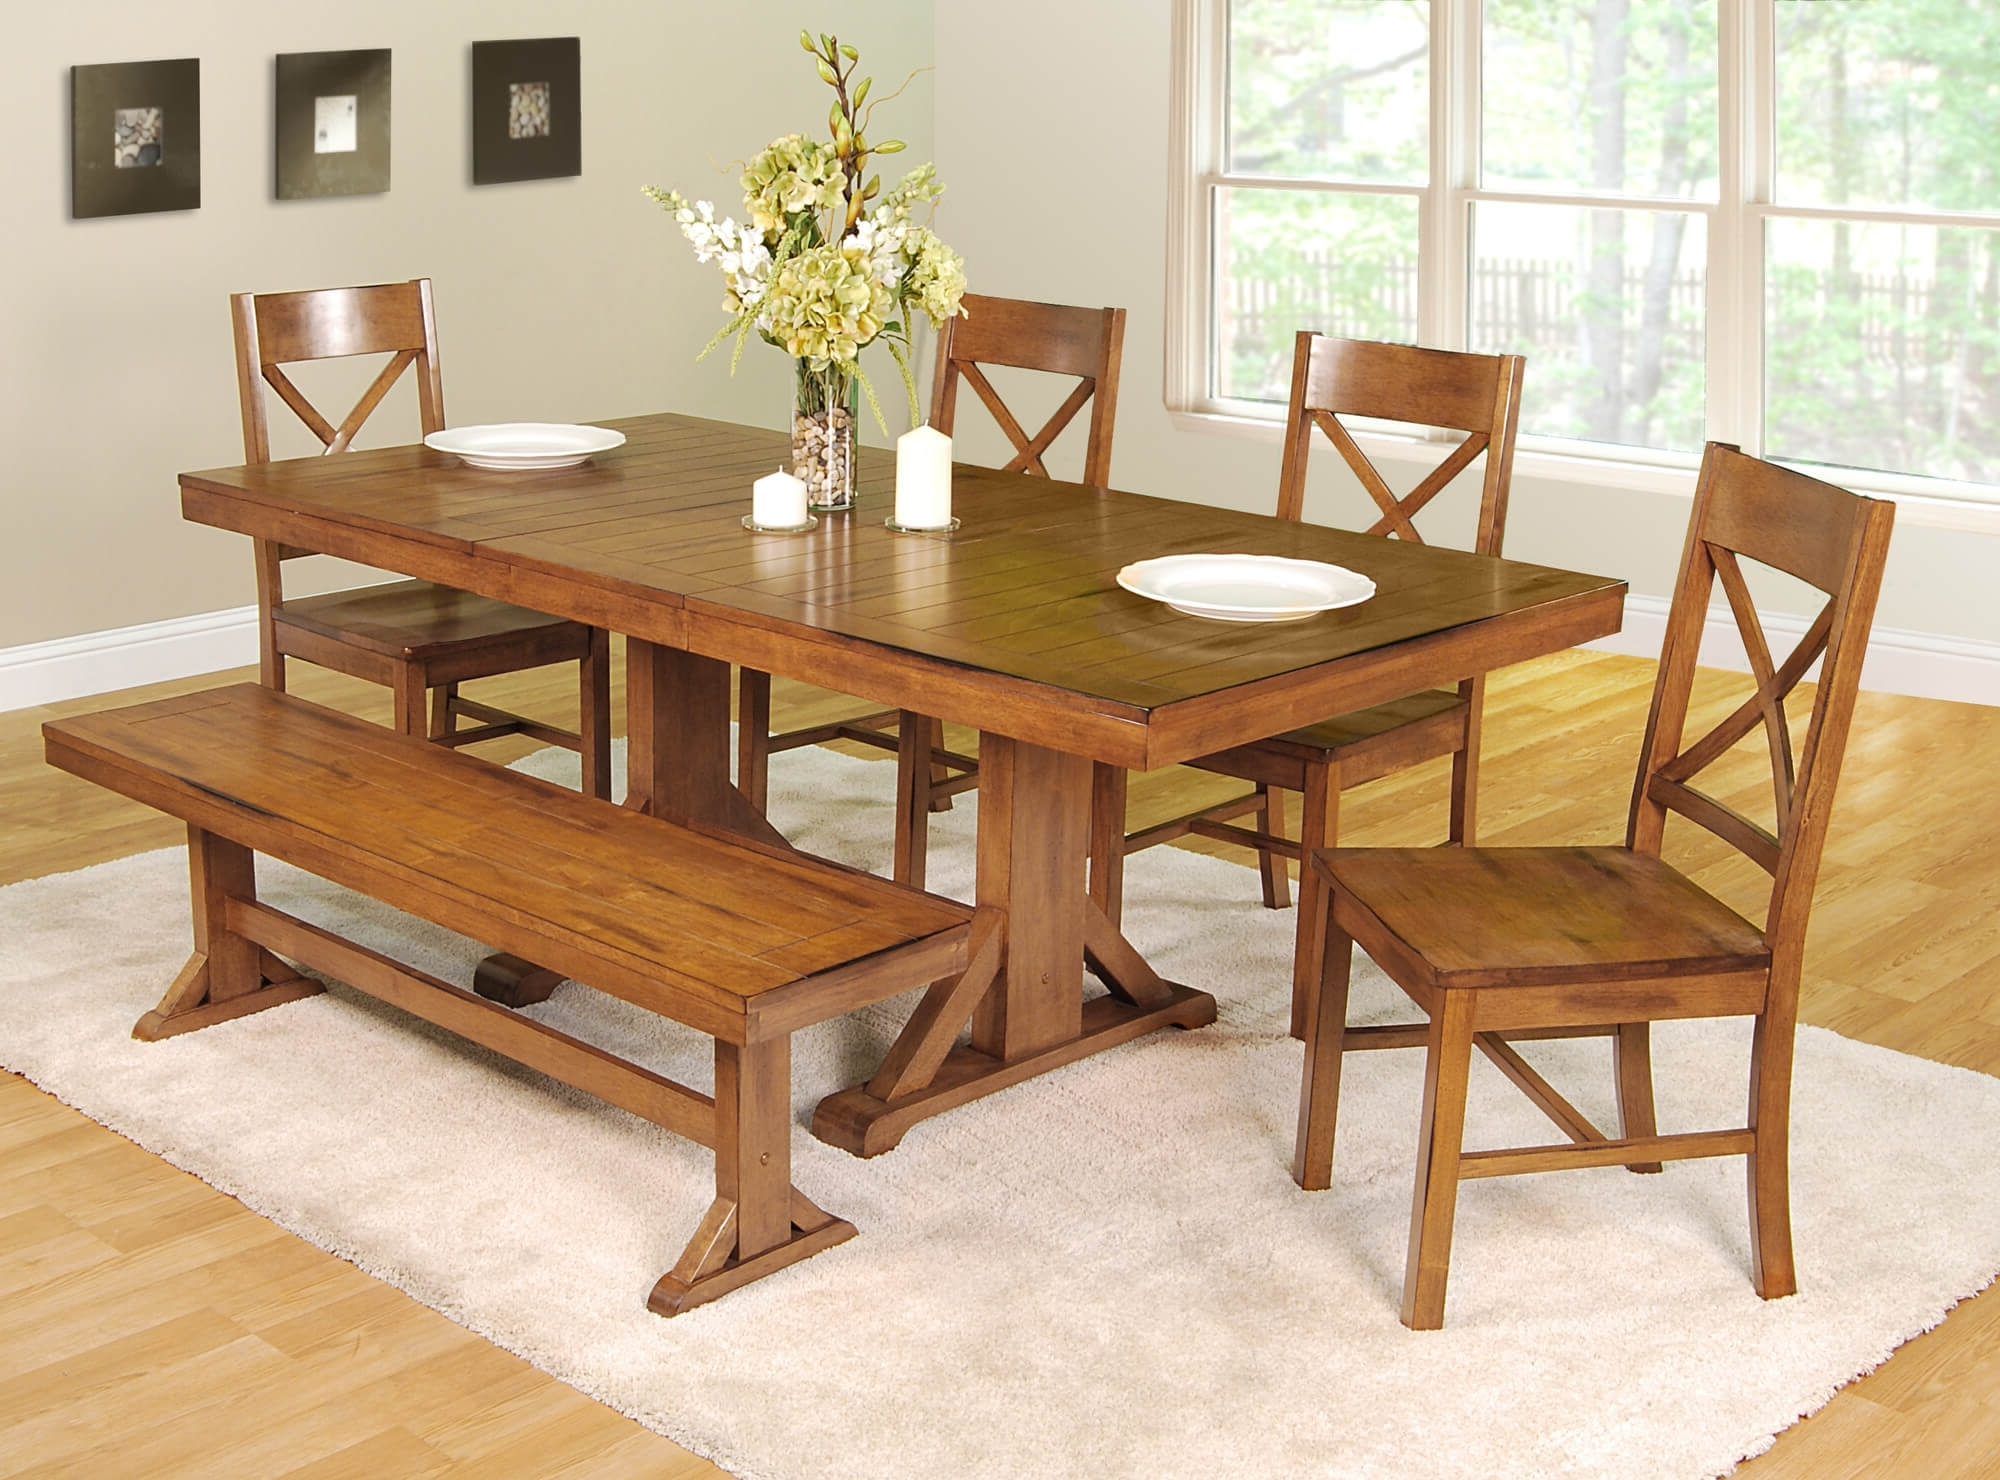 Indoor Picnic Style Dining Tables Intended For Favorite 26 Dining Room Sets (Big And Small) With Bench Seating (2018) (Gallery 6 of 25)